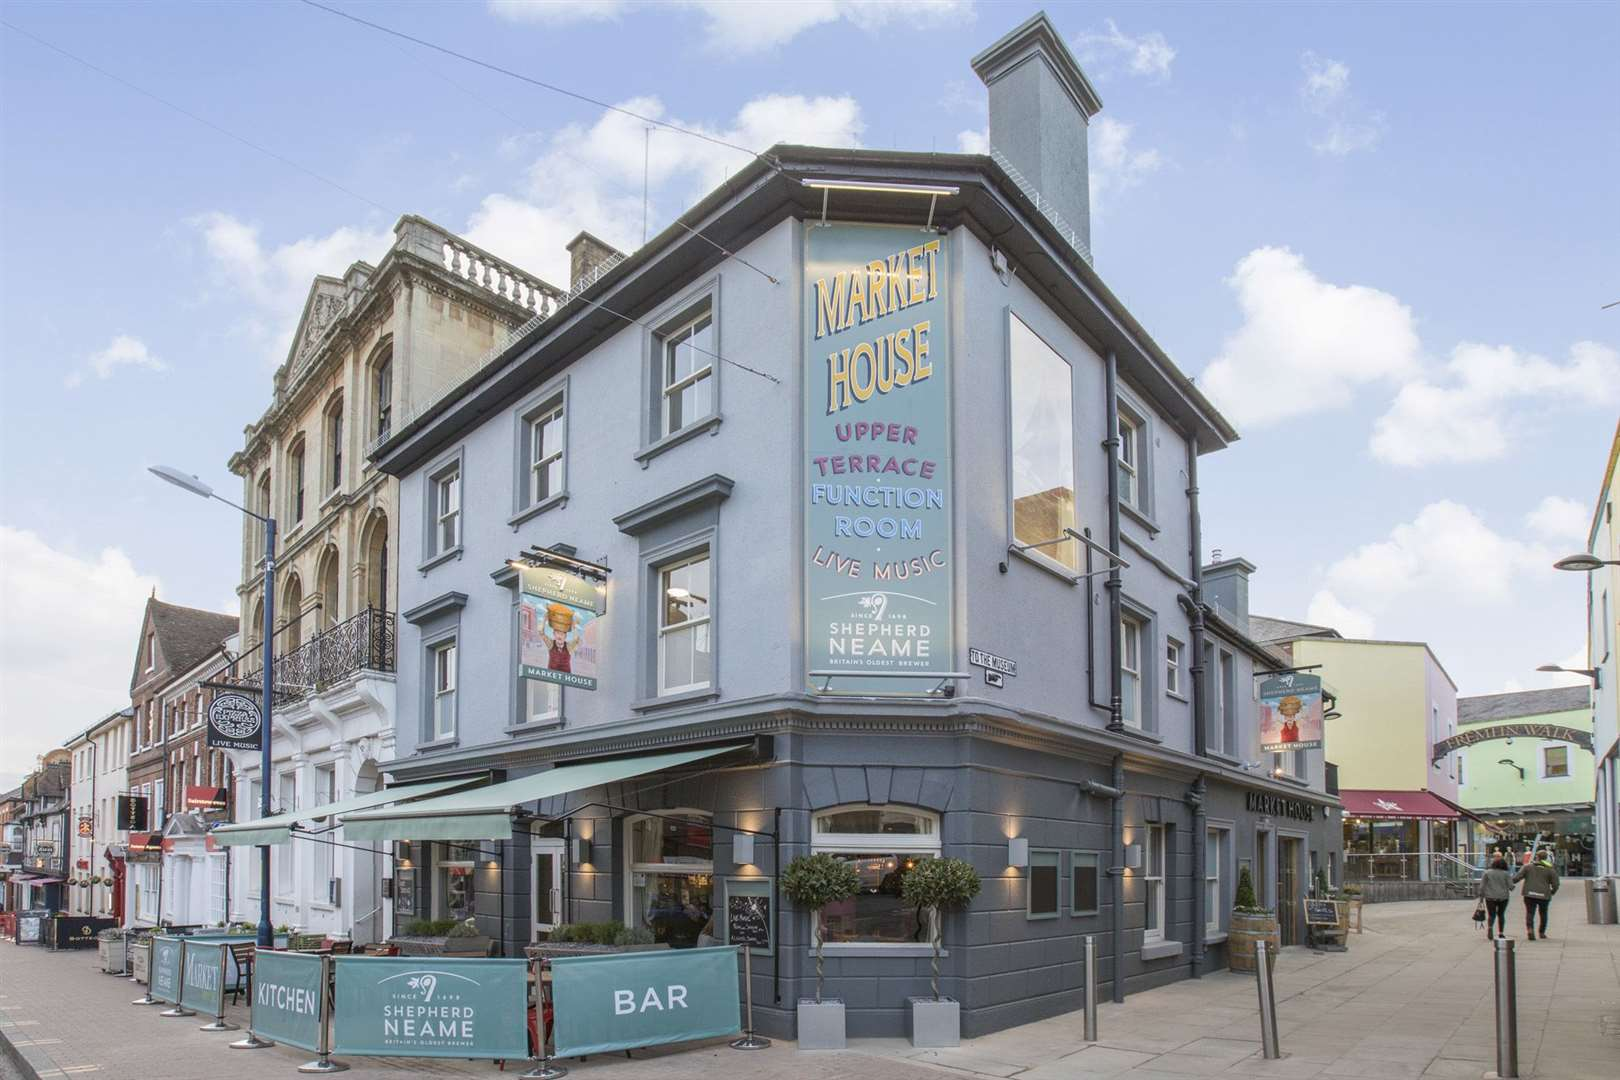 The Market House has won Pub of the Year at the Shepherd Neame Pub Awards (12715700)